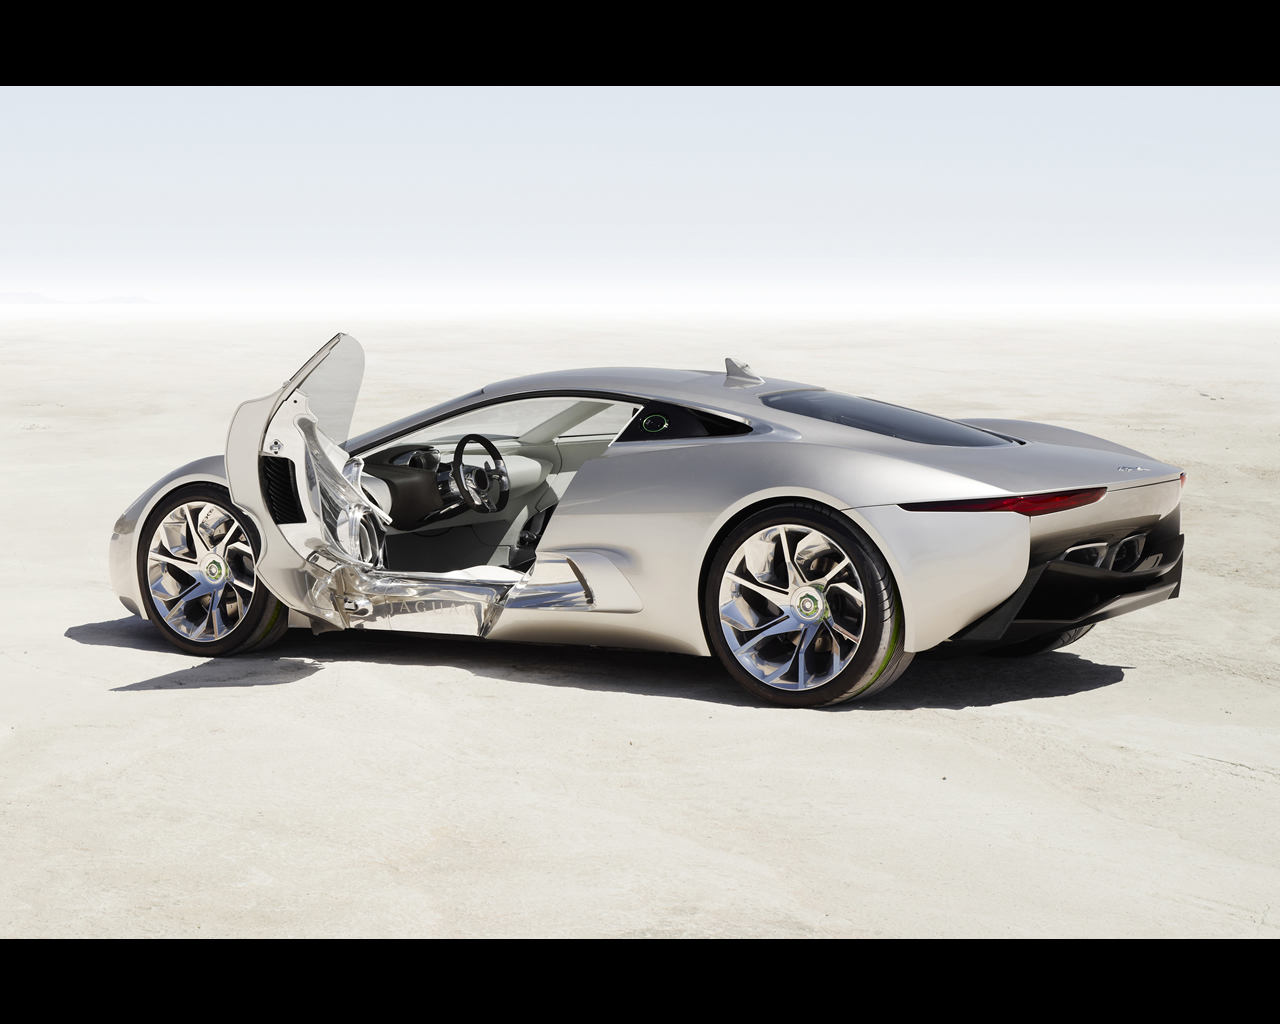 Attractive Jaguar C X75 Concept 2010   Plug In Electric Car With Gas Turbines  Propelled Range Extender.